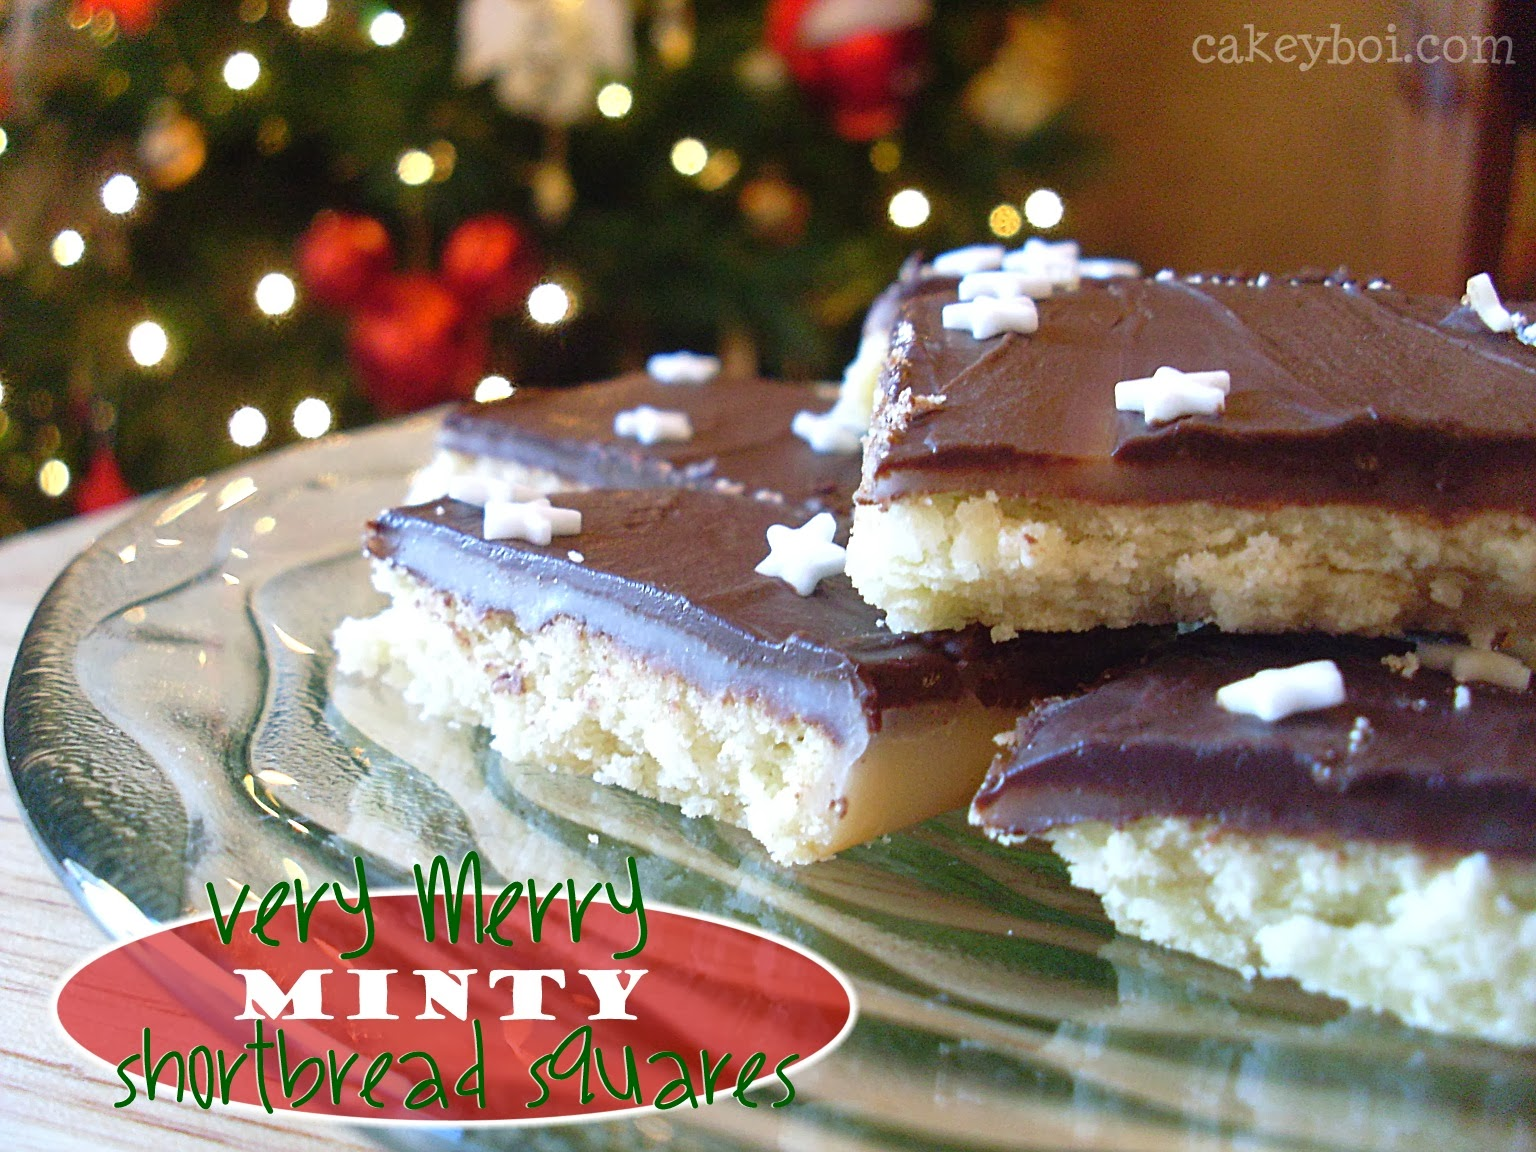 Very Merry Minty Shortbread Squares